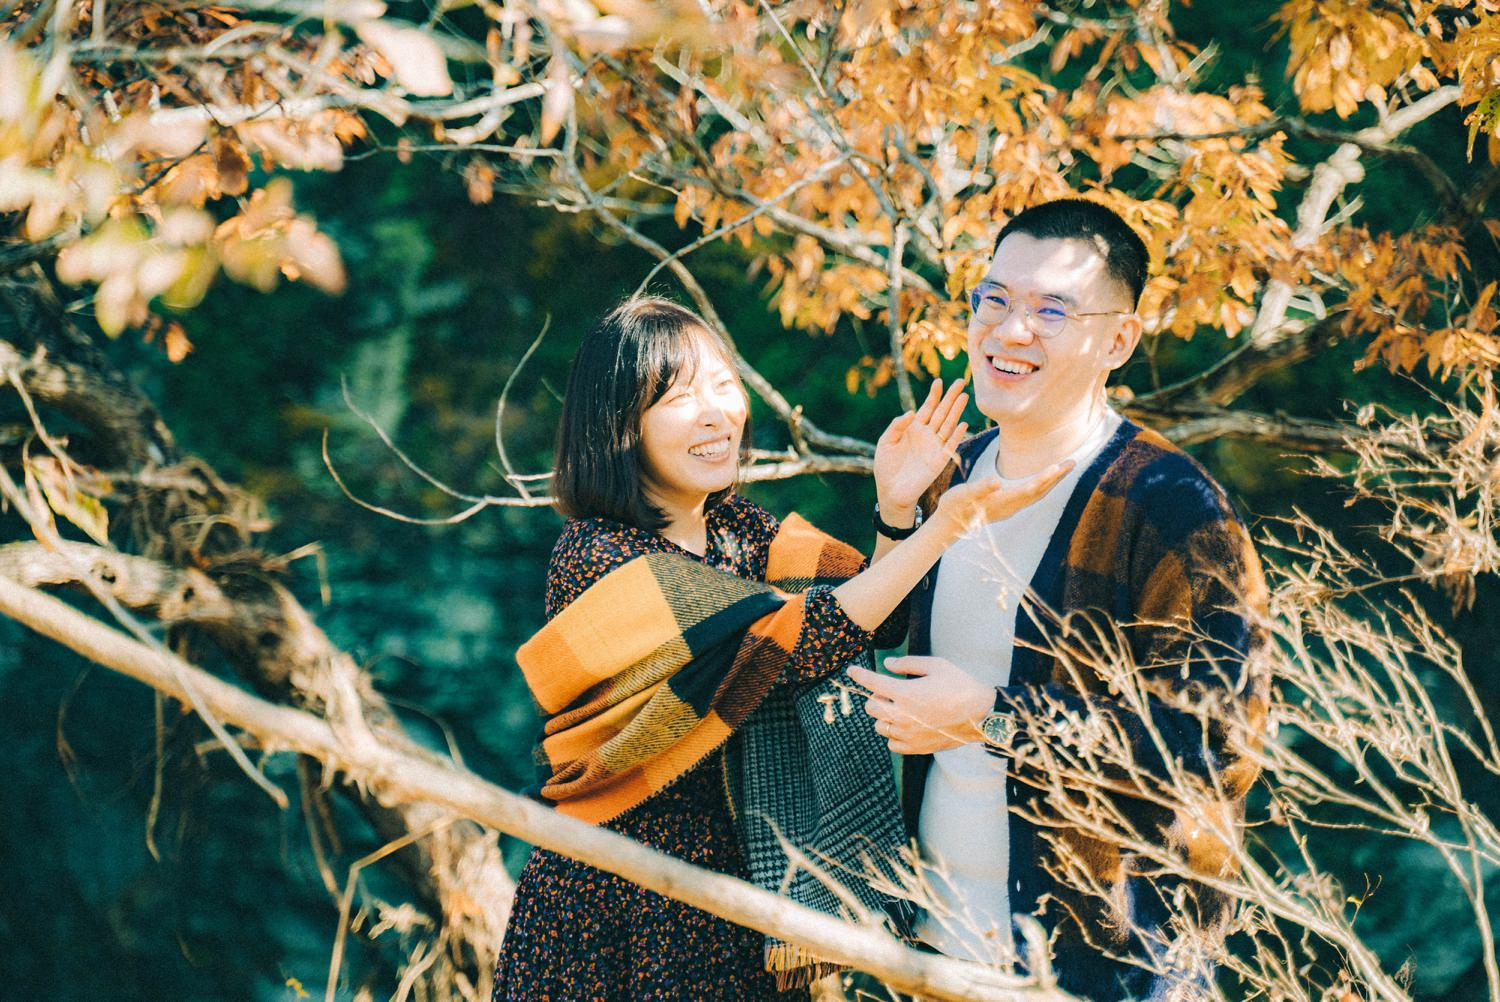 Oak St Studios - Rain and Yanyan Tokyo Japan Engagement Wedding Photographer